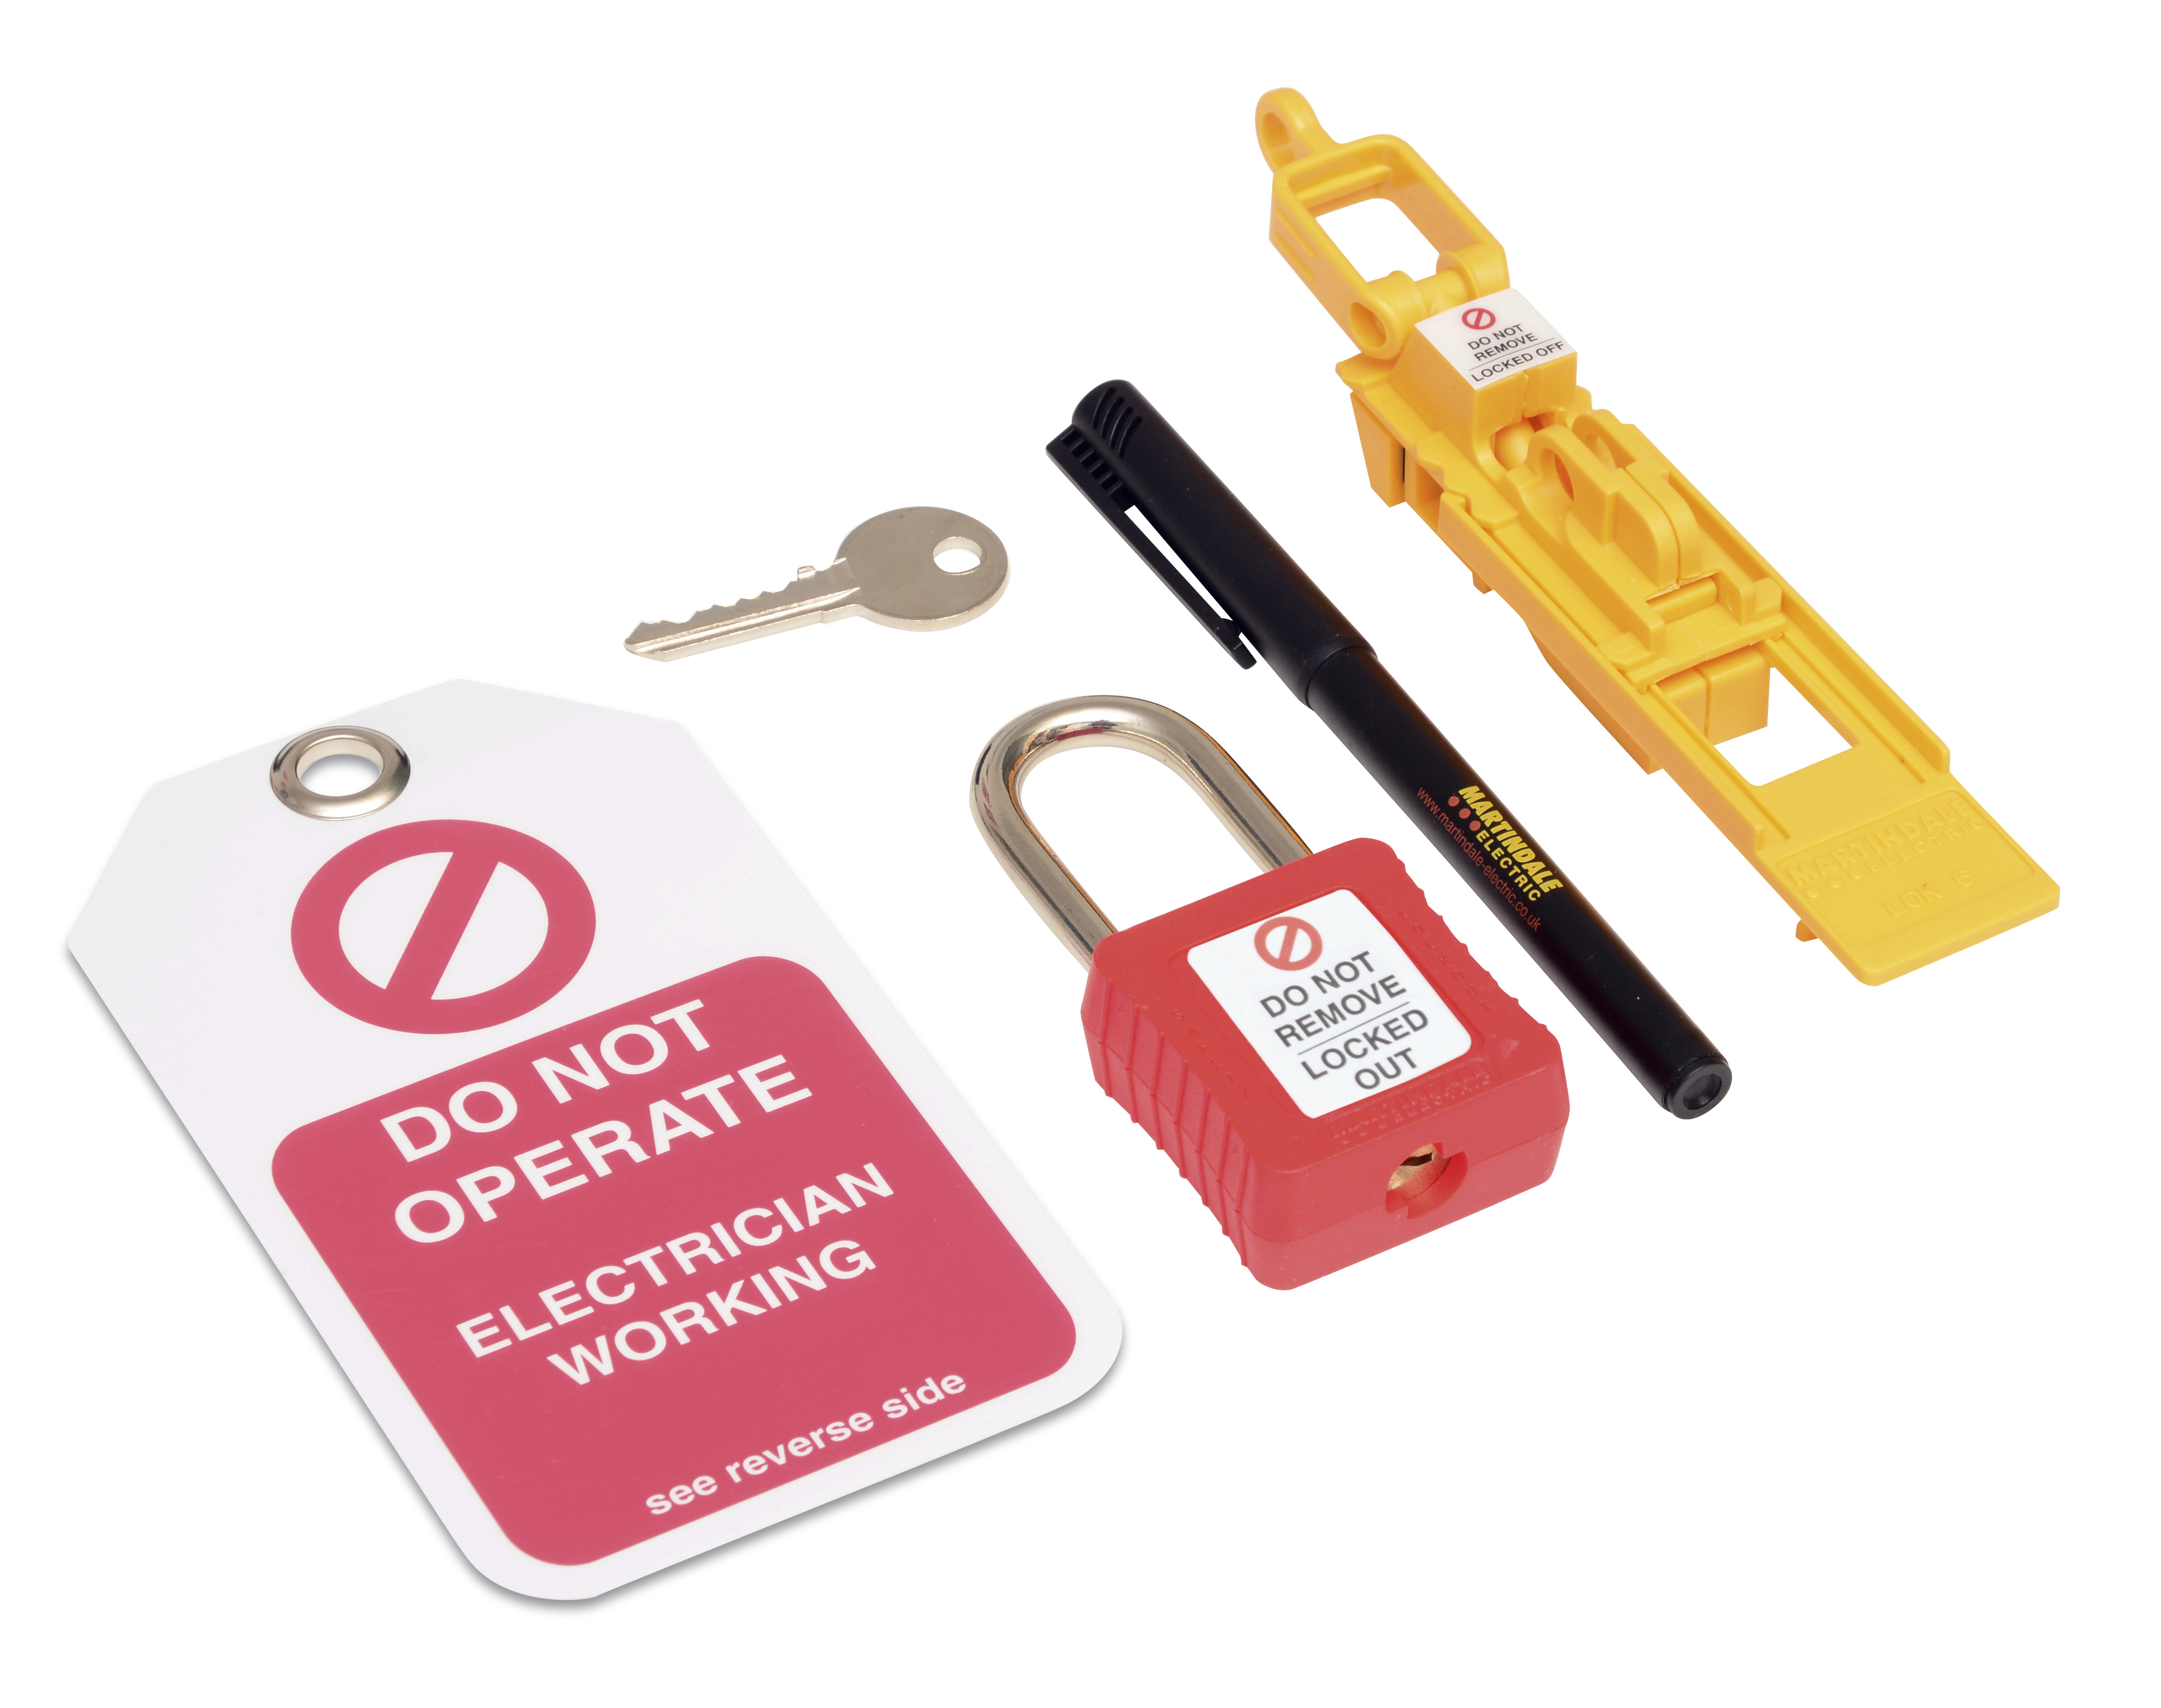 LOKKIT6 Universal Fuse Carrier Lock-out kit on panel lockout, transformer lockout, electrical plug lockout, switch lockout, hose bibb lockout,